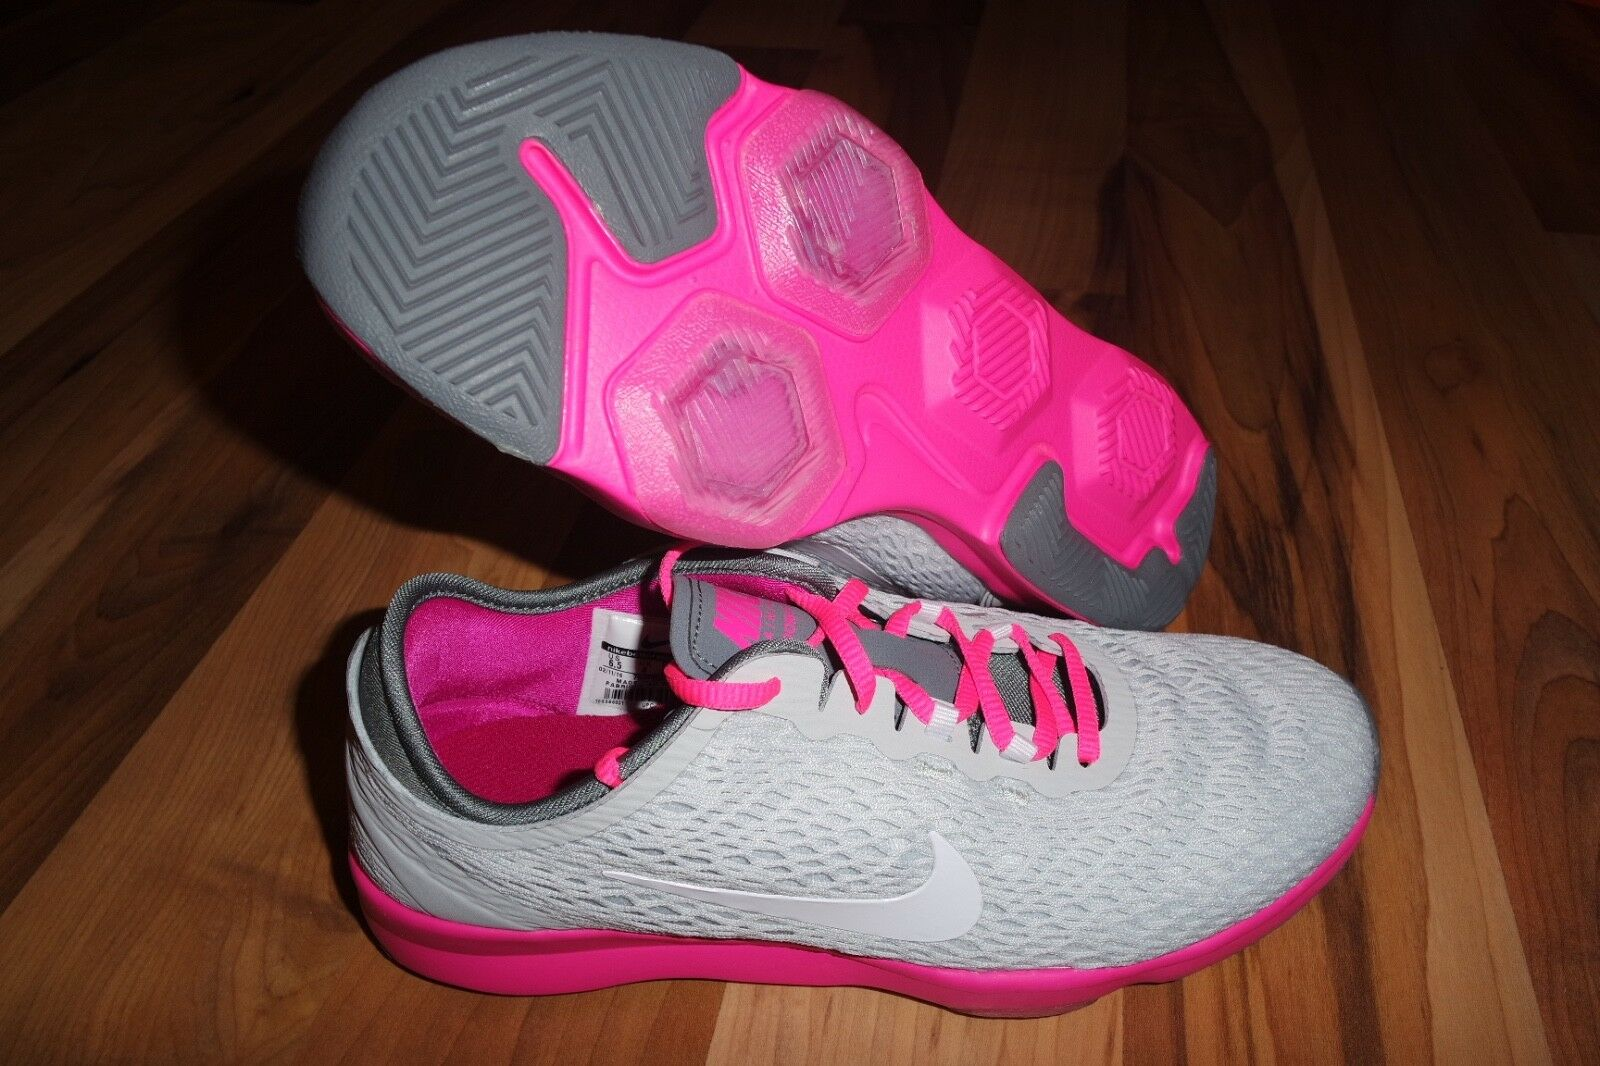 Nike femmes  Zoom Fit rose Training Running Chaussures Sneakers 704658 008 6.5 EU 37.5